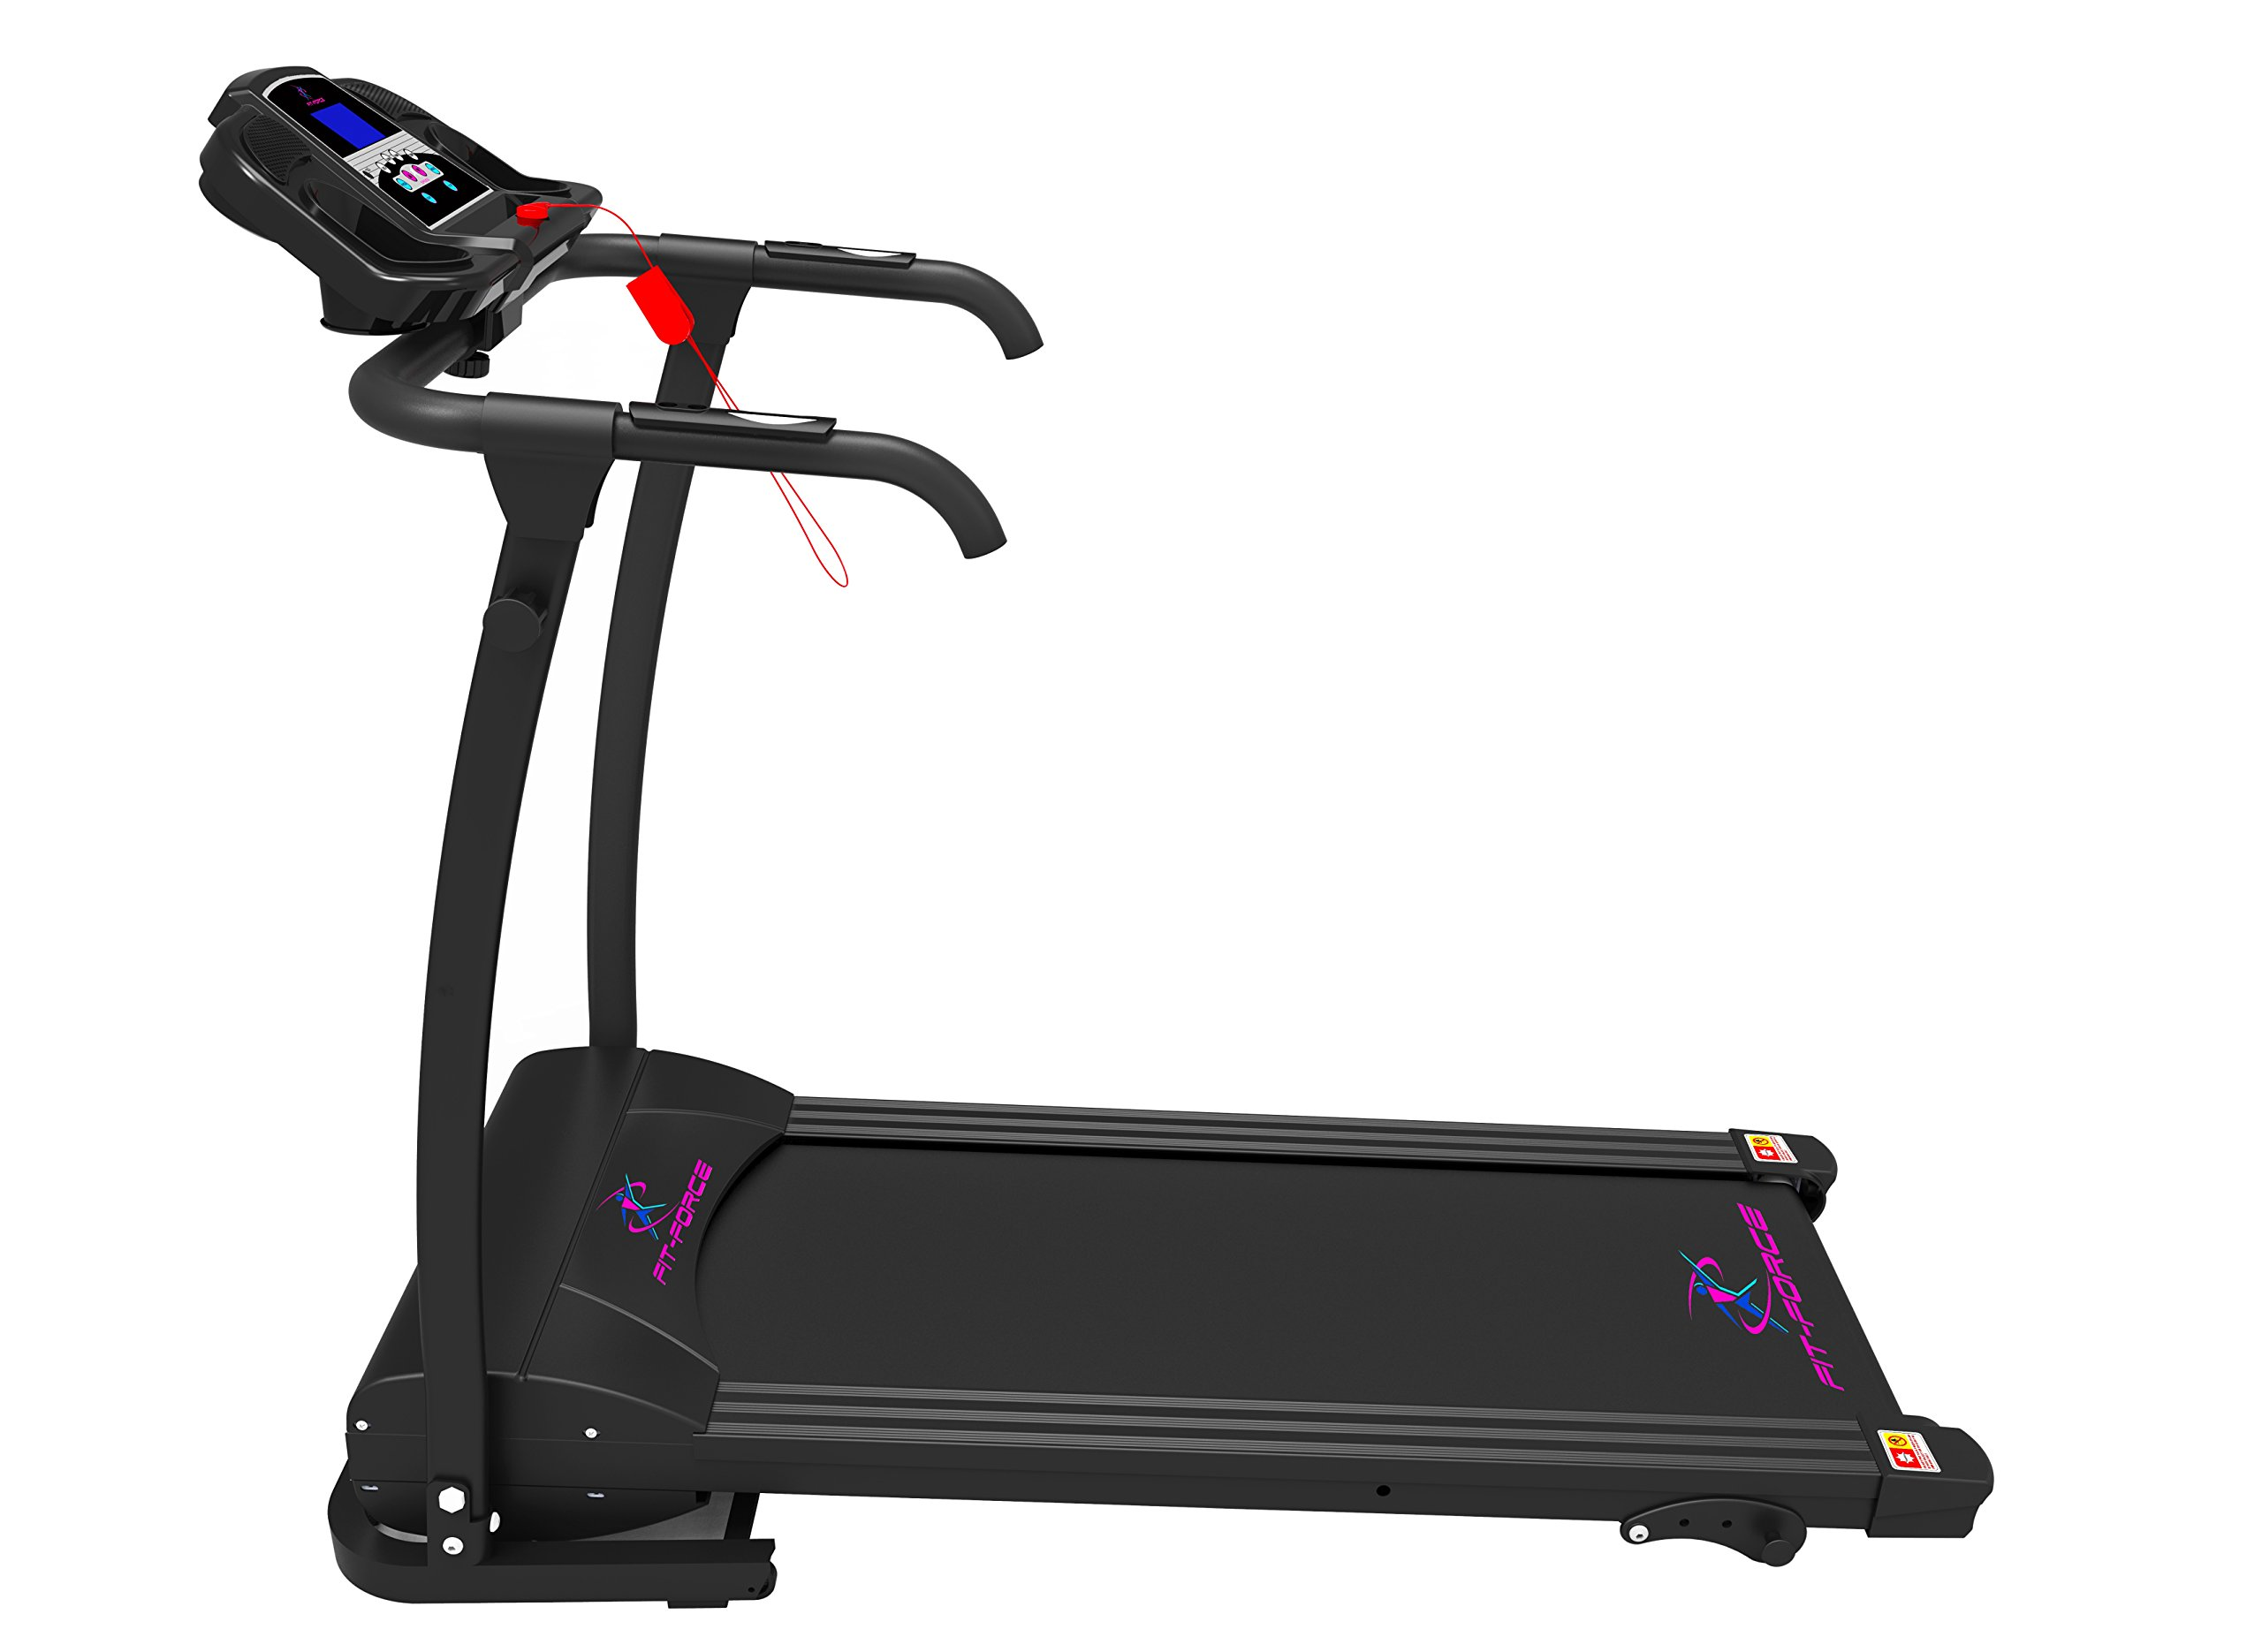 Fit-Force Cinta de Correr Plegable 1500W 0-14 kmph Entrada MP3 y Dos